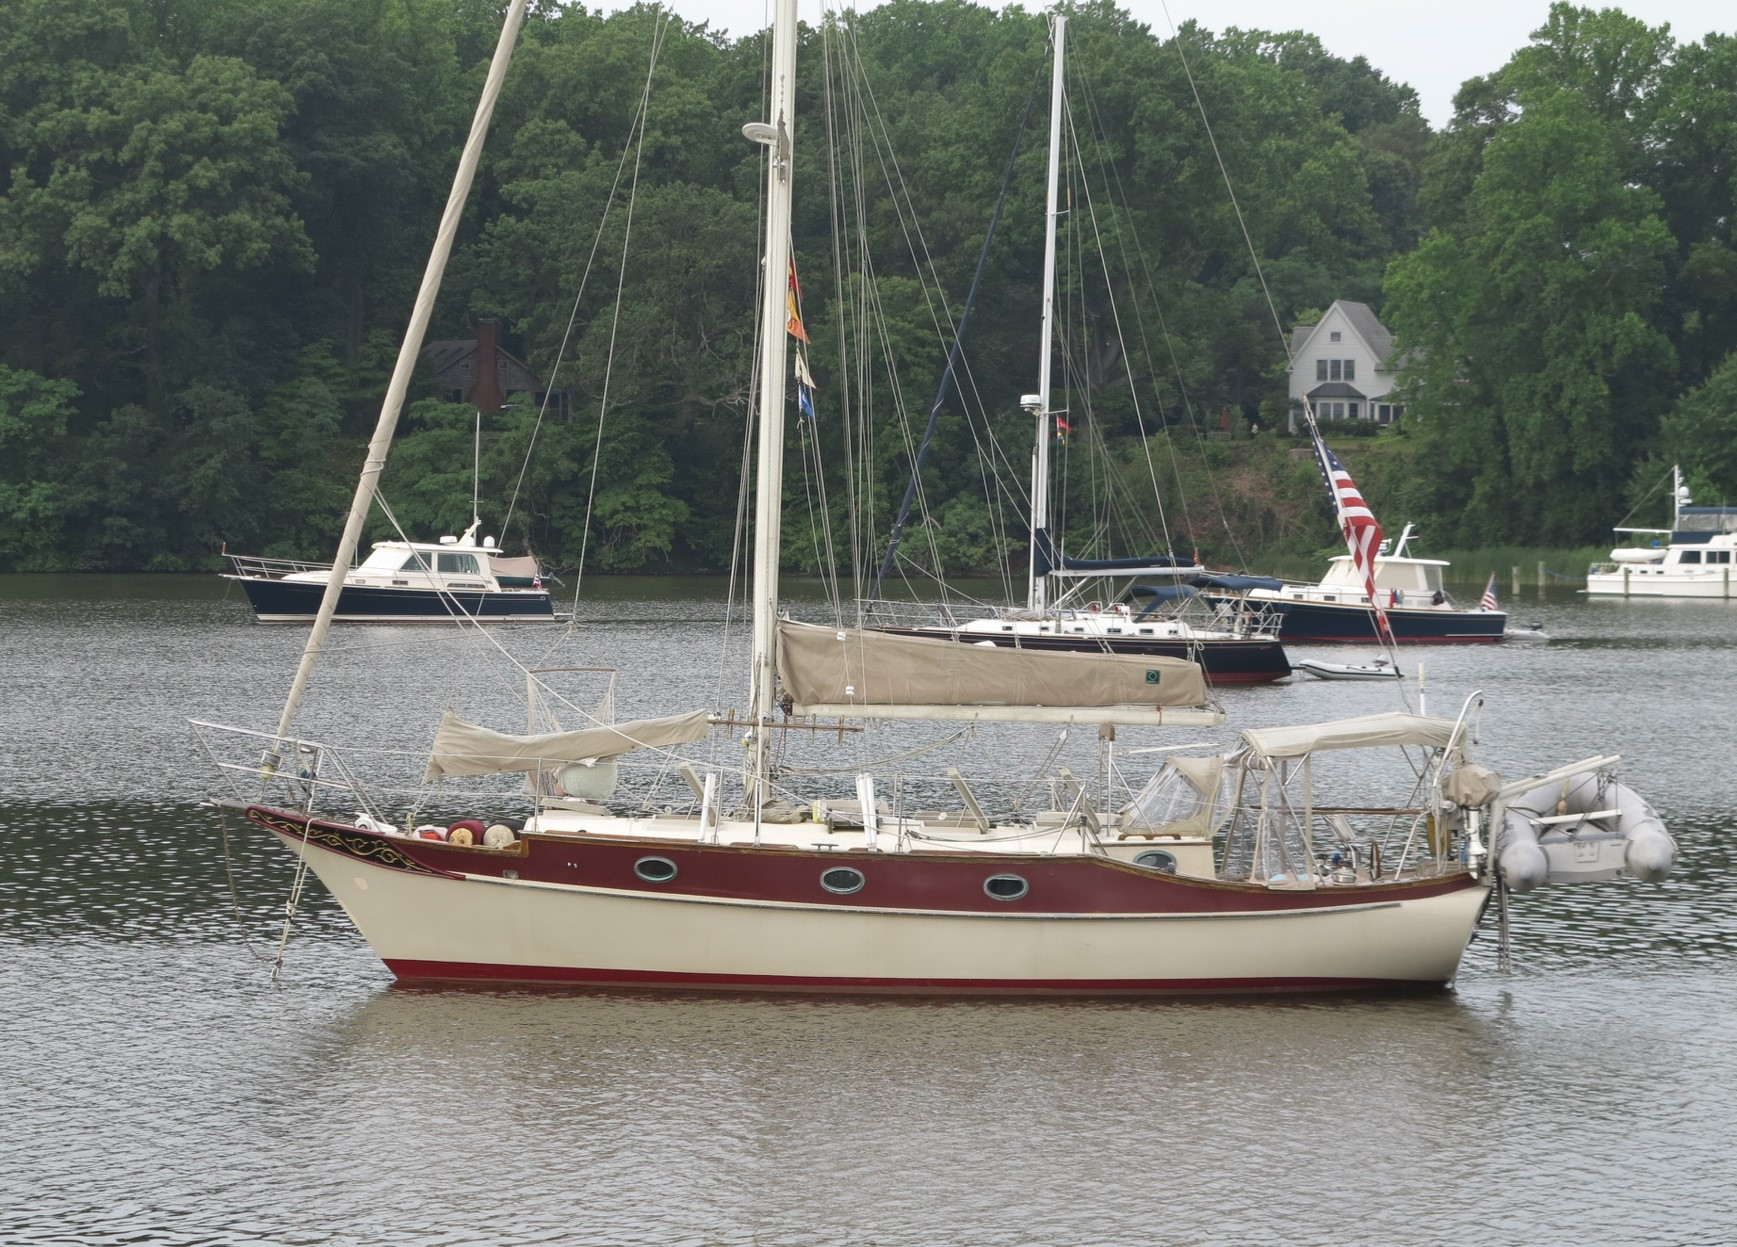 A cruiser with a properly set bridle that will stretch rather than tug at the anchor chain.